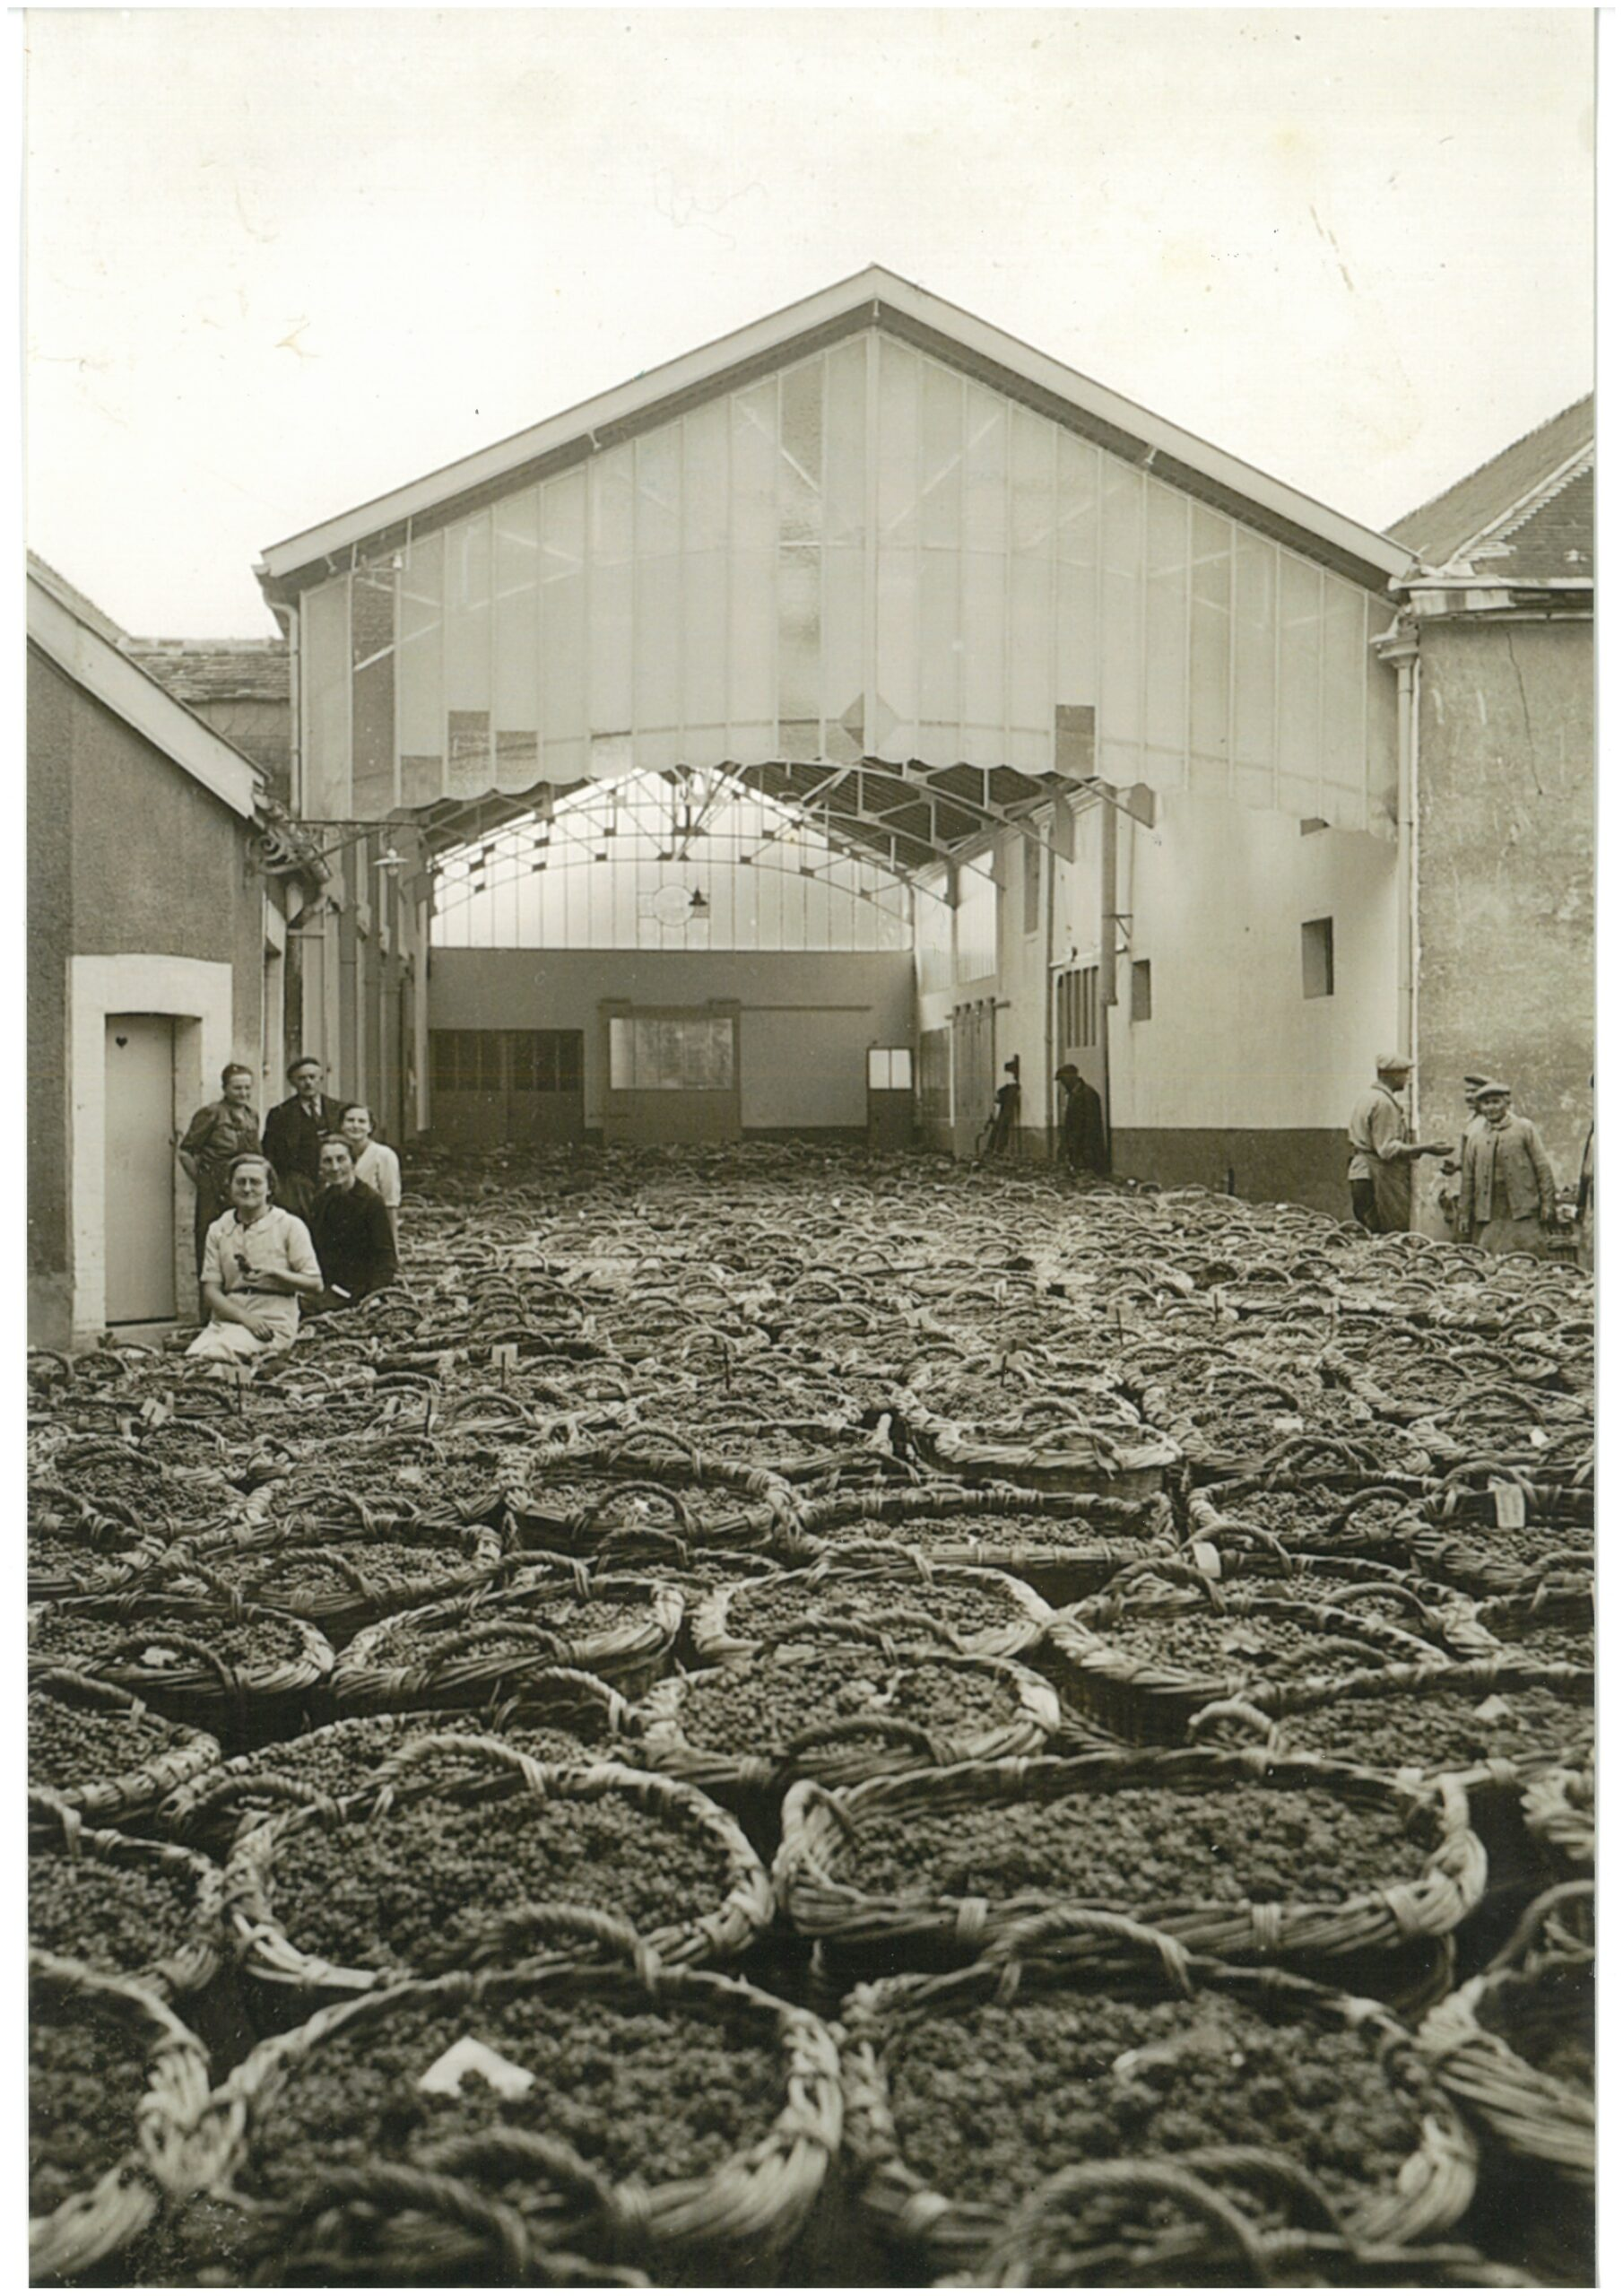 Champagne AR Lenoble: trying to celebrate 100 years in a pandemic